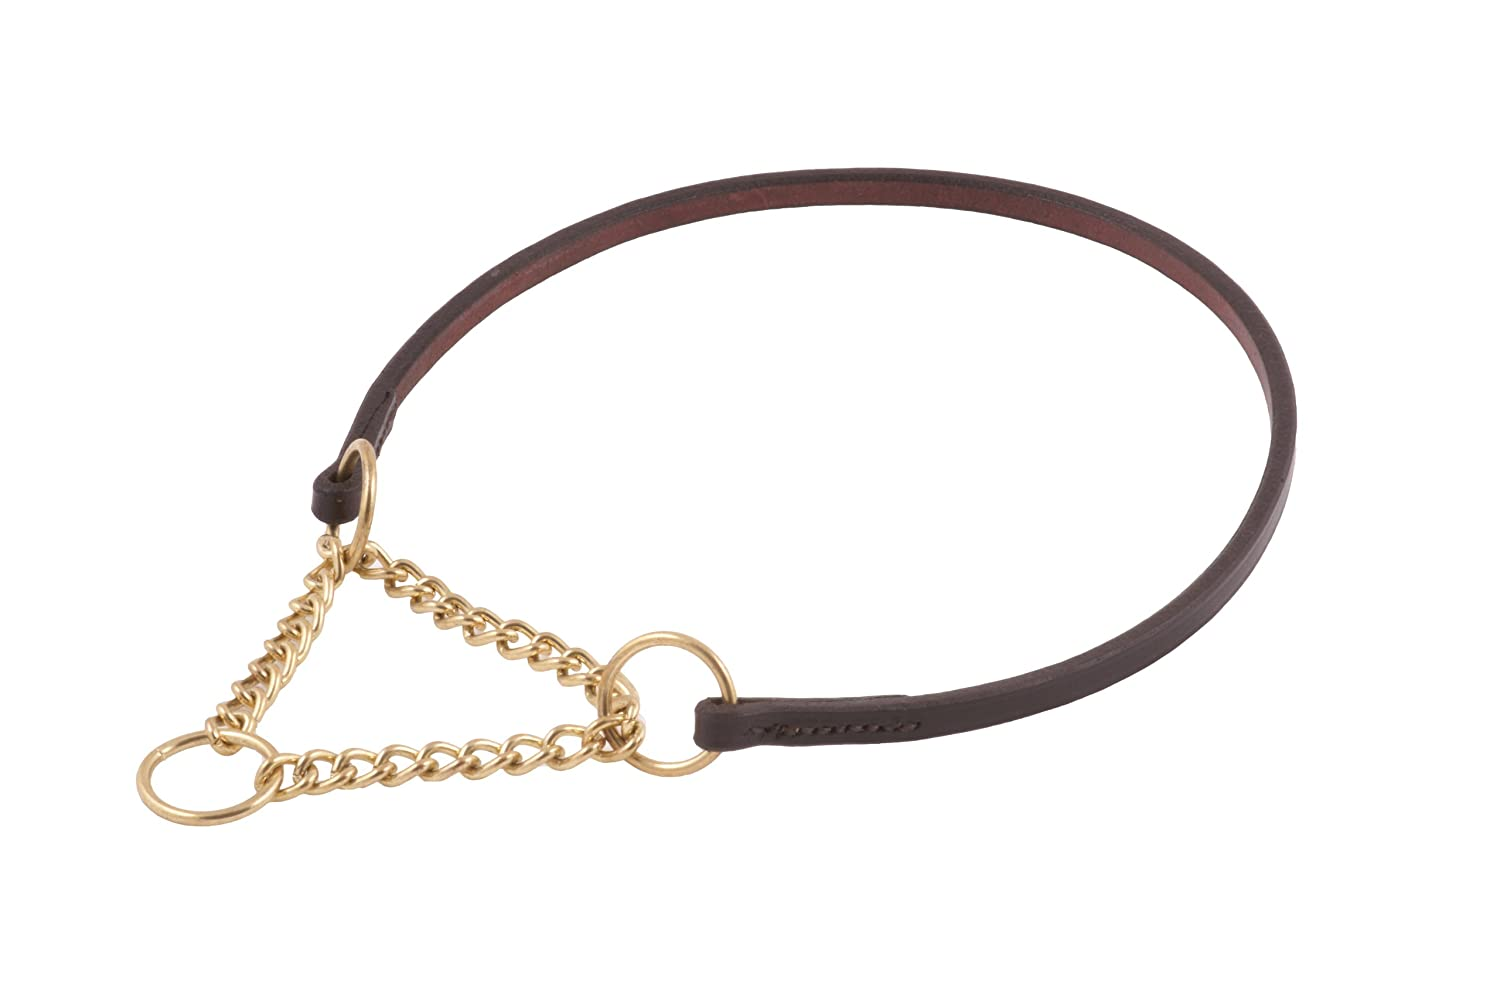 Brown Alvalley Flat Slip Collar for Dogs Thickness 1 4 in x Large 18 in